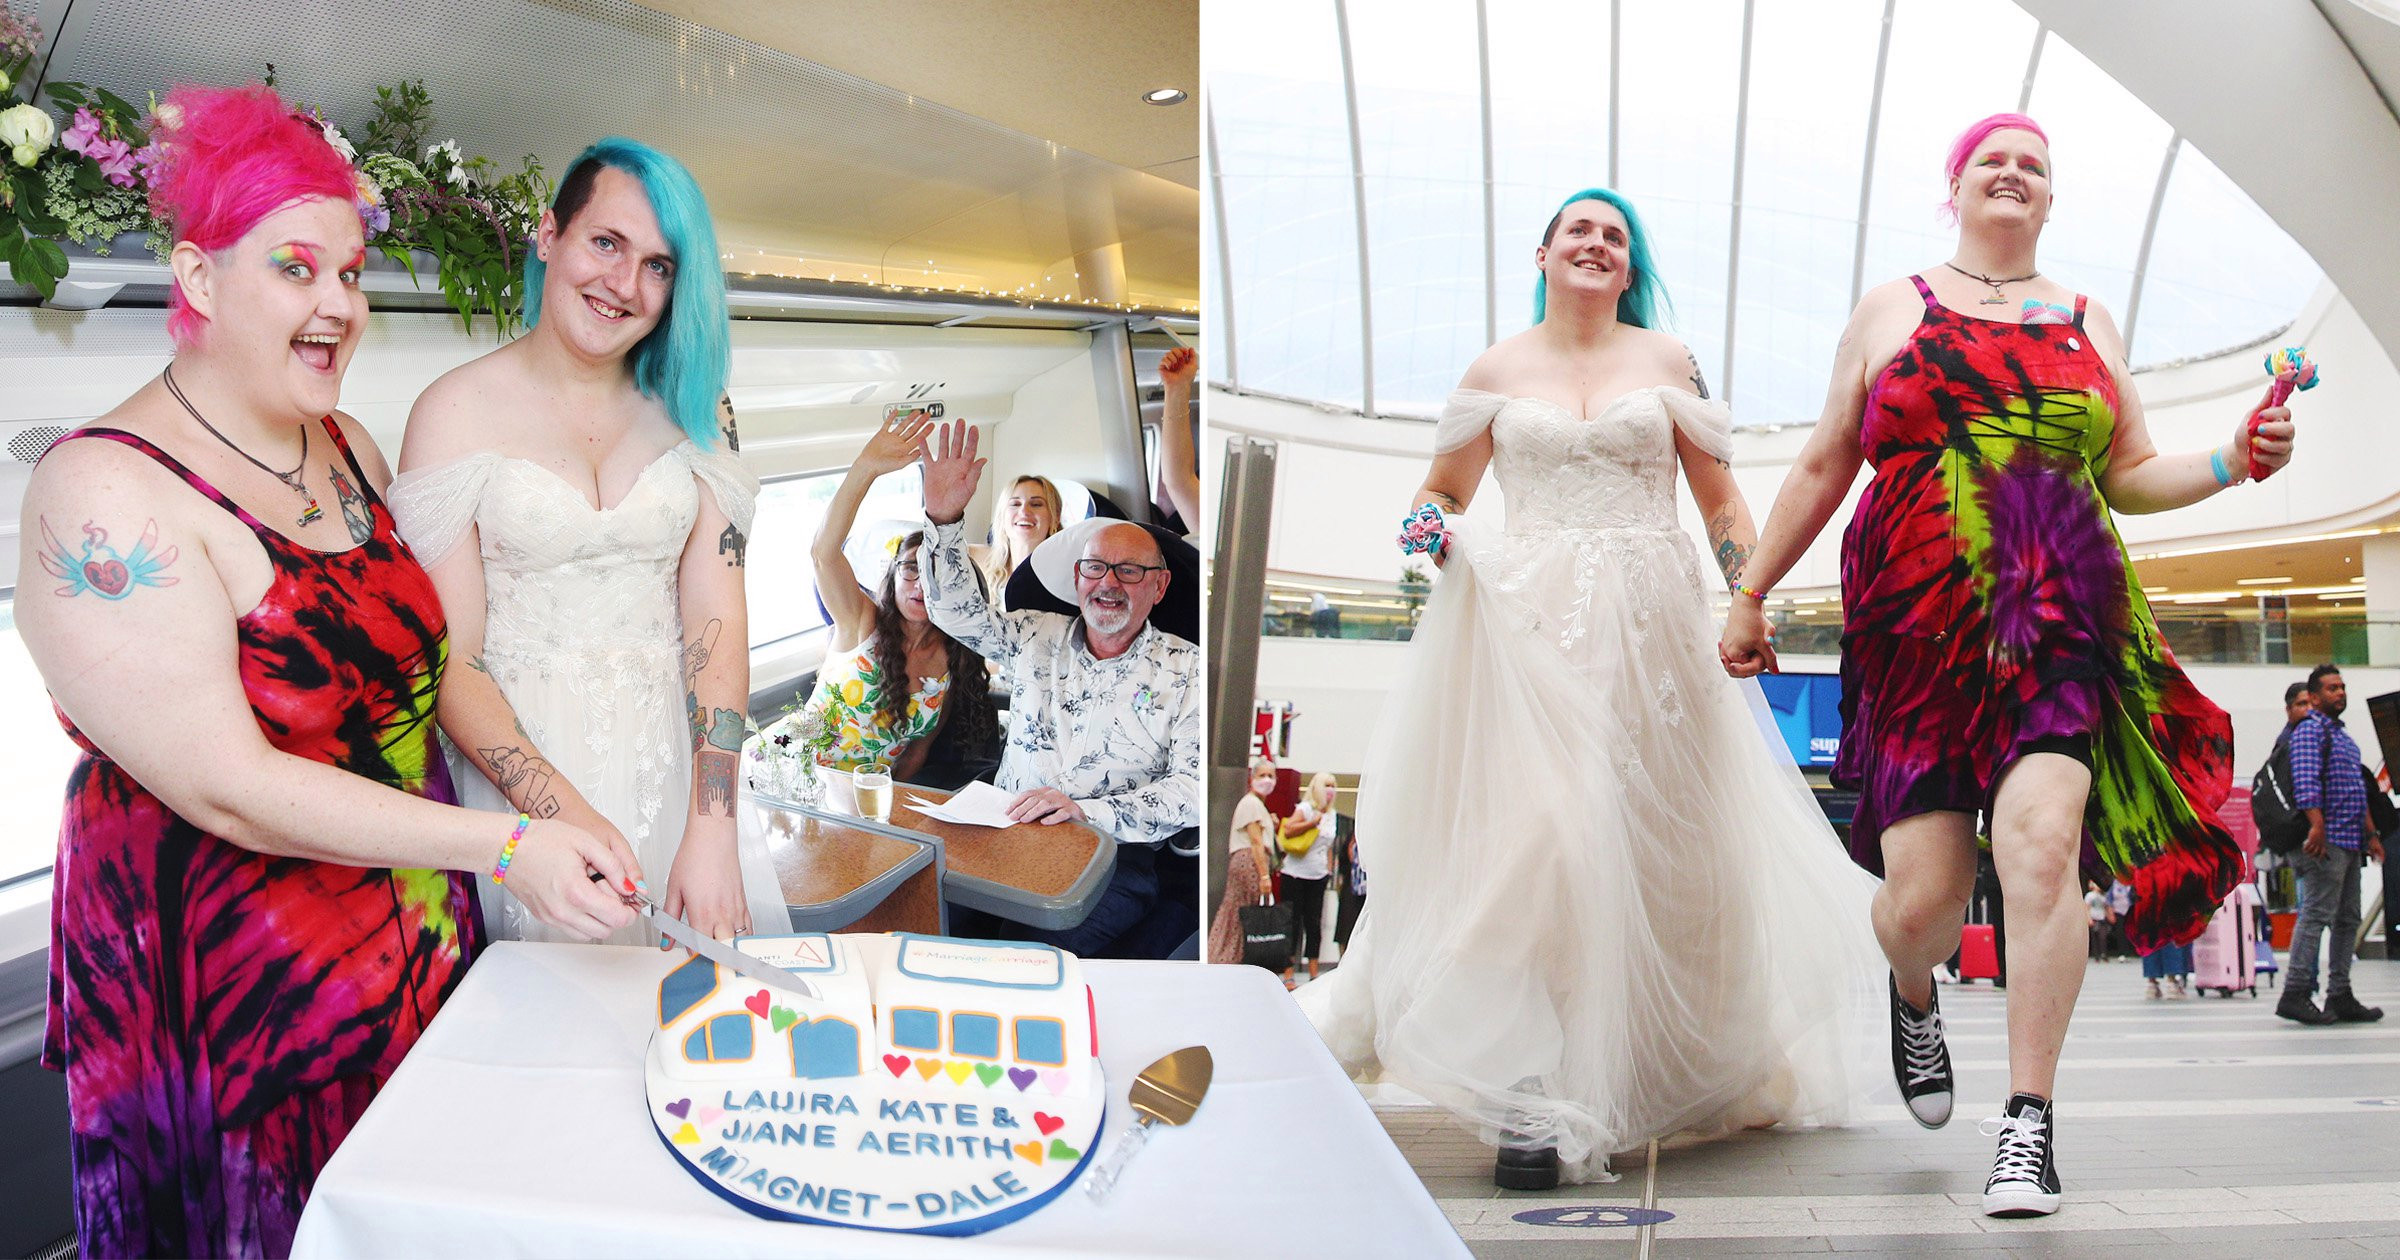 Couple who love railways get married aboard moving train